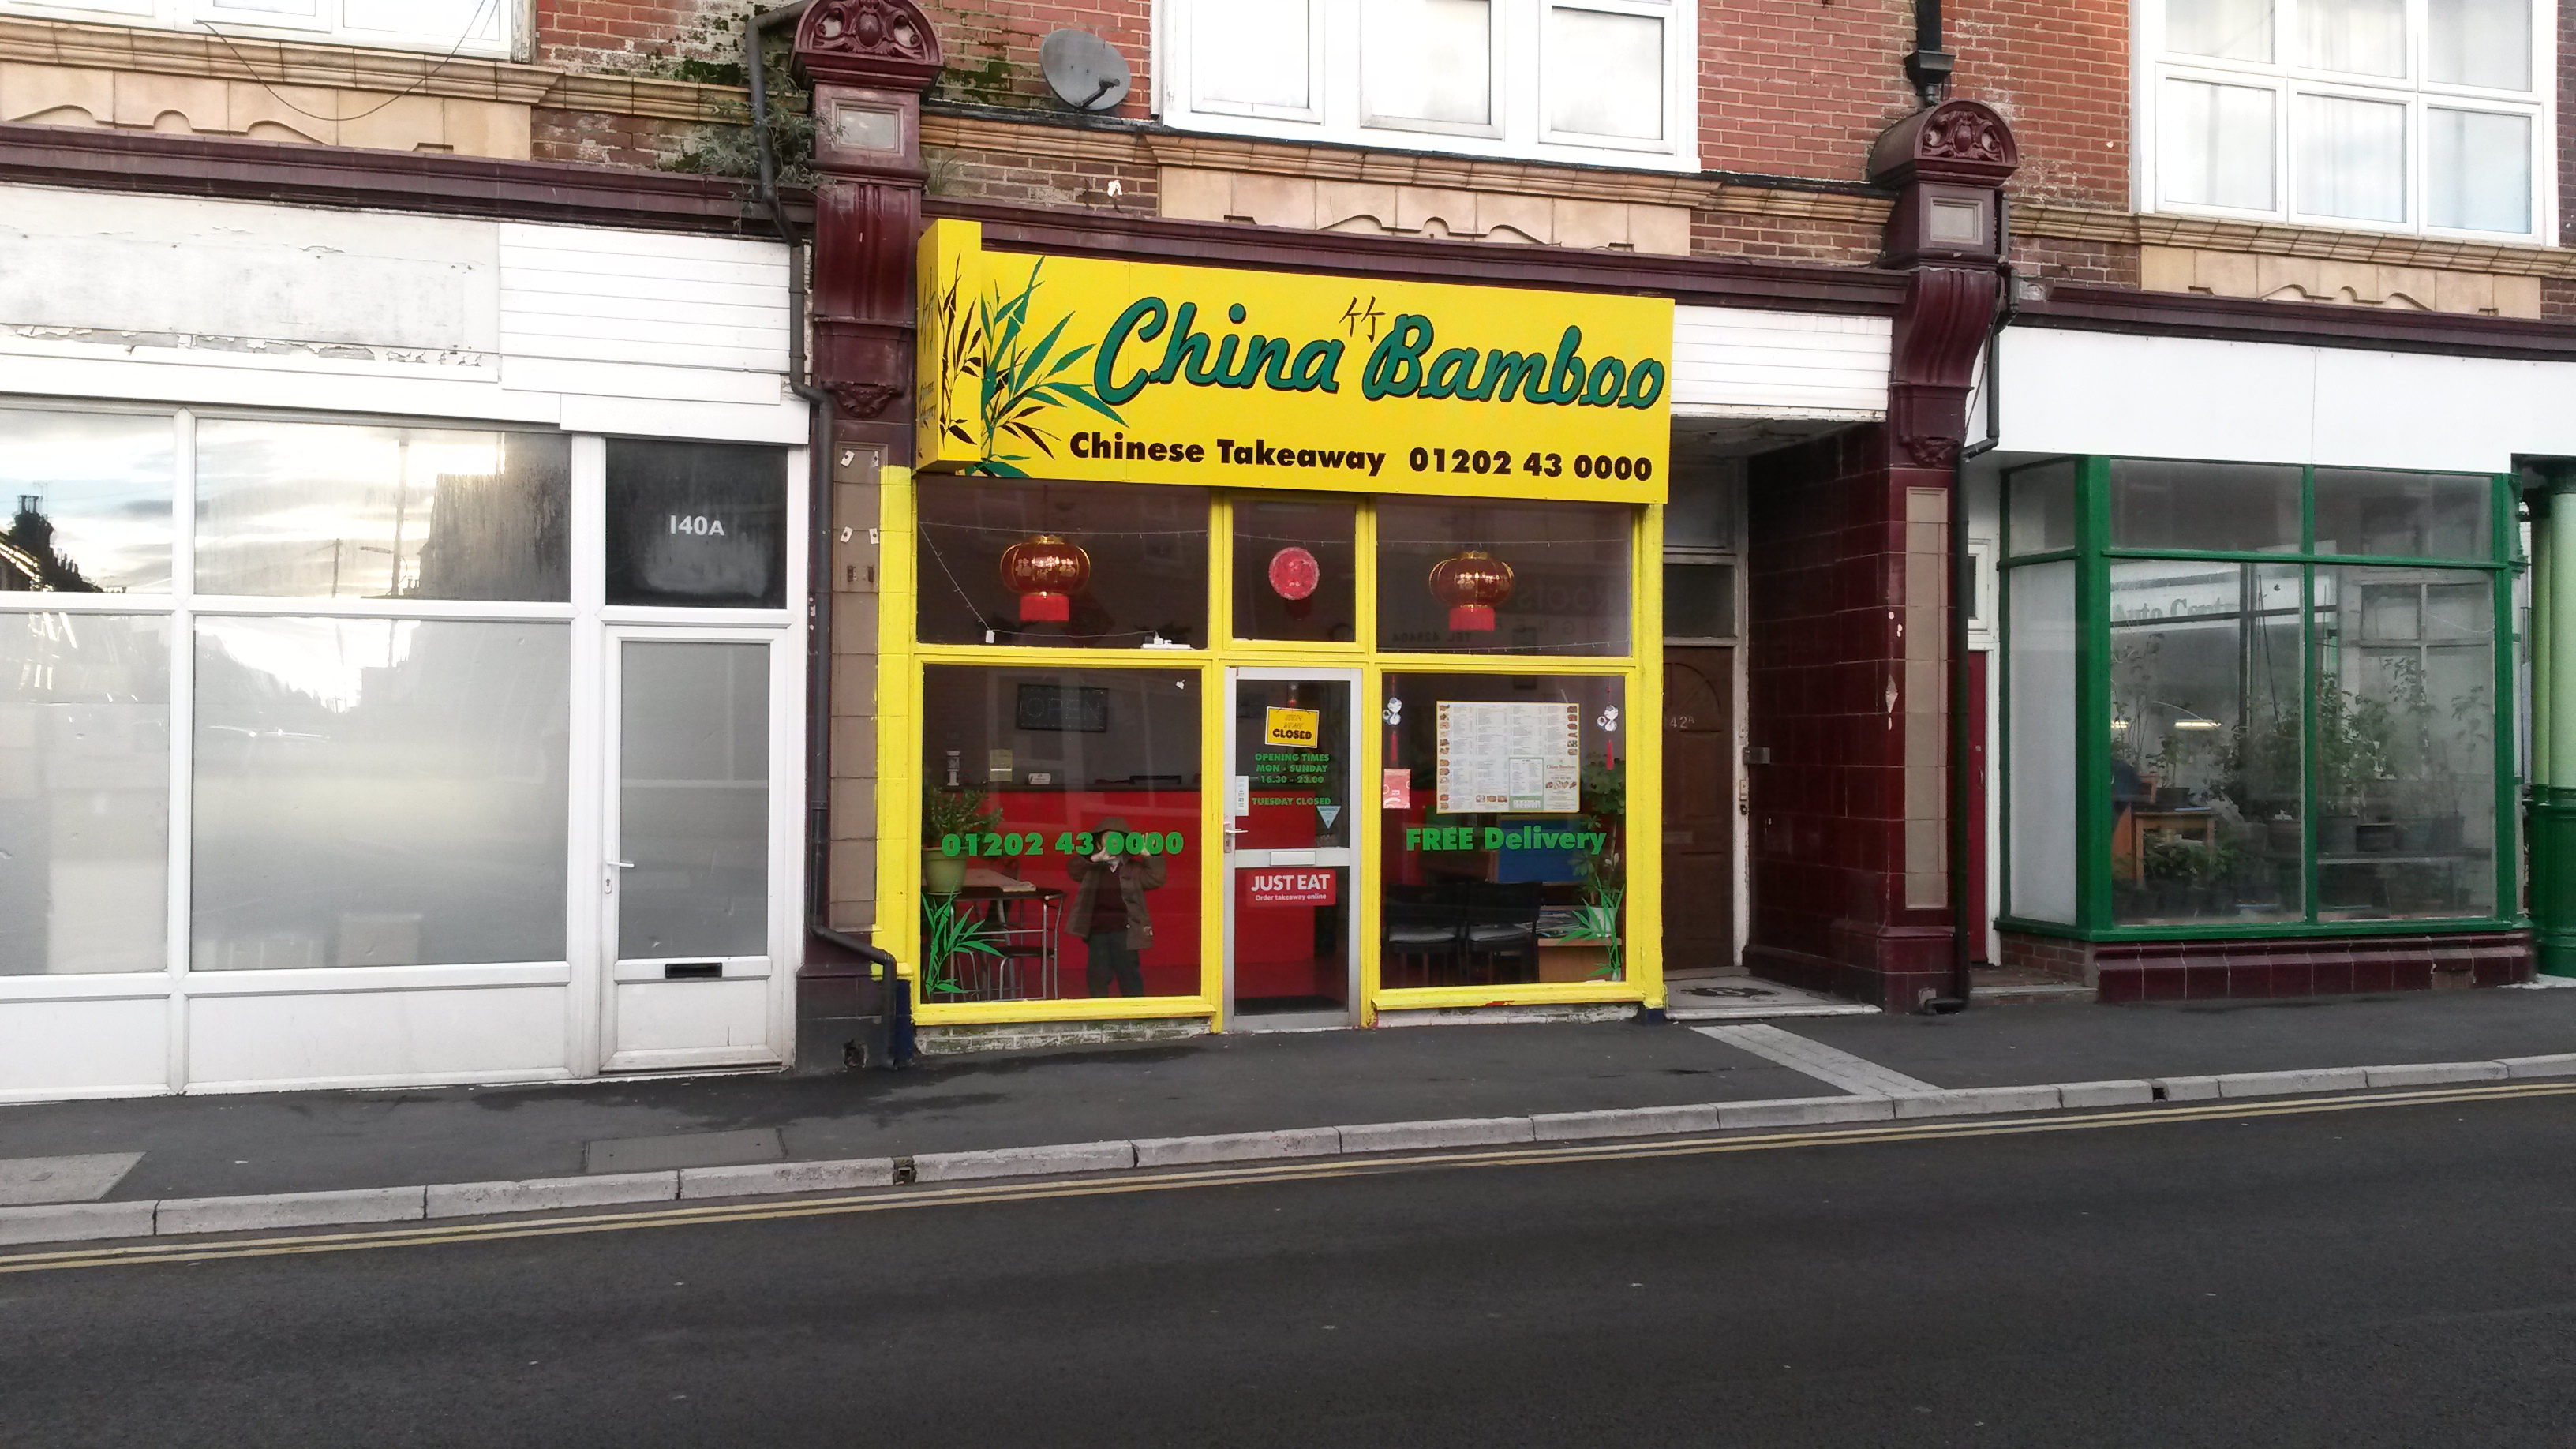 TAKEAWAY PREMISES FOR SALE